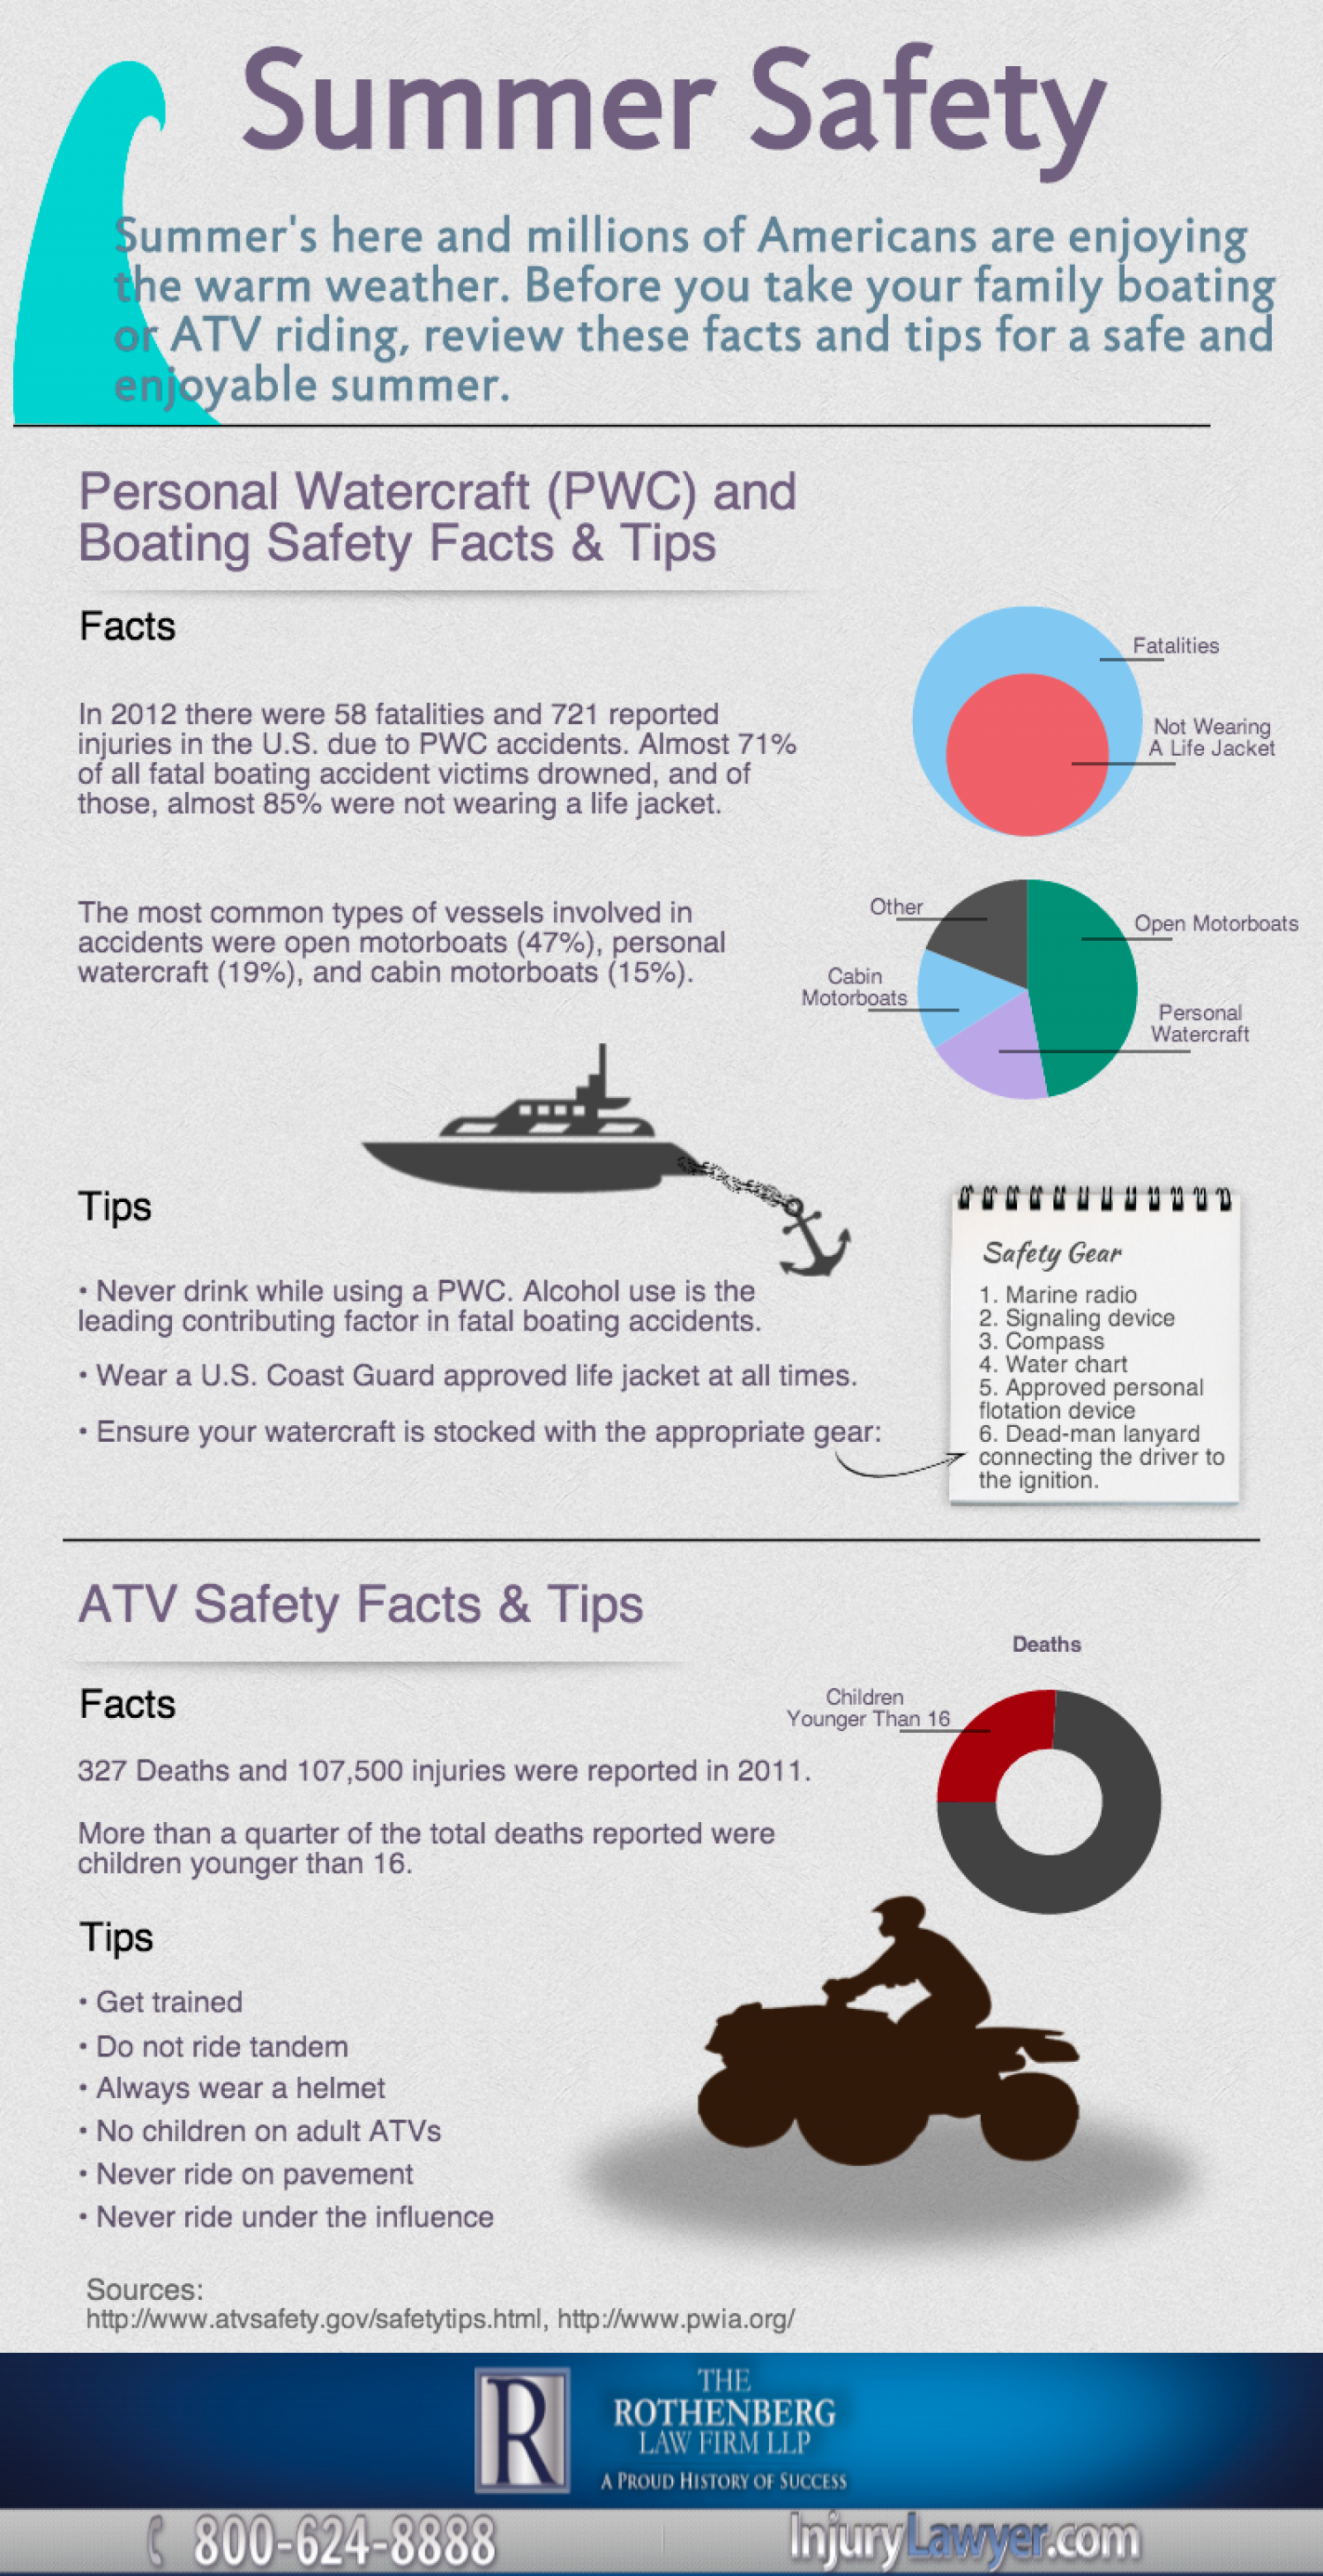 Summer Safety Tips From The Rothenberg Law Firm LLP Infographic